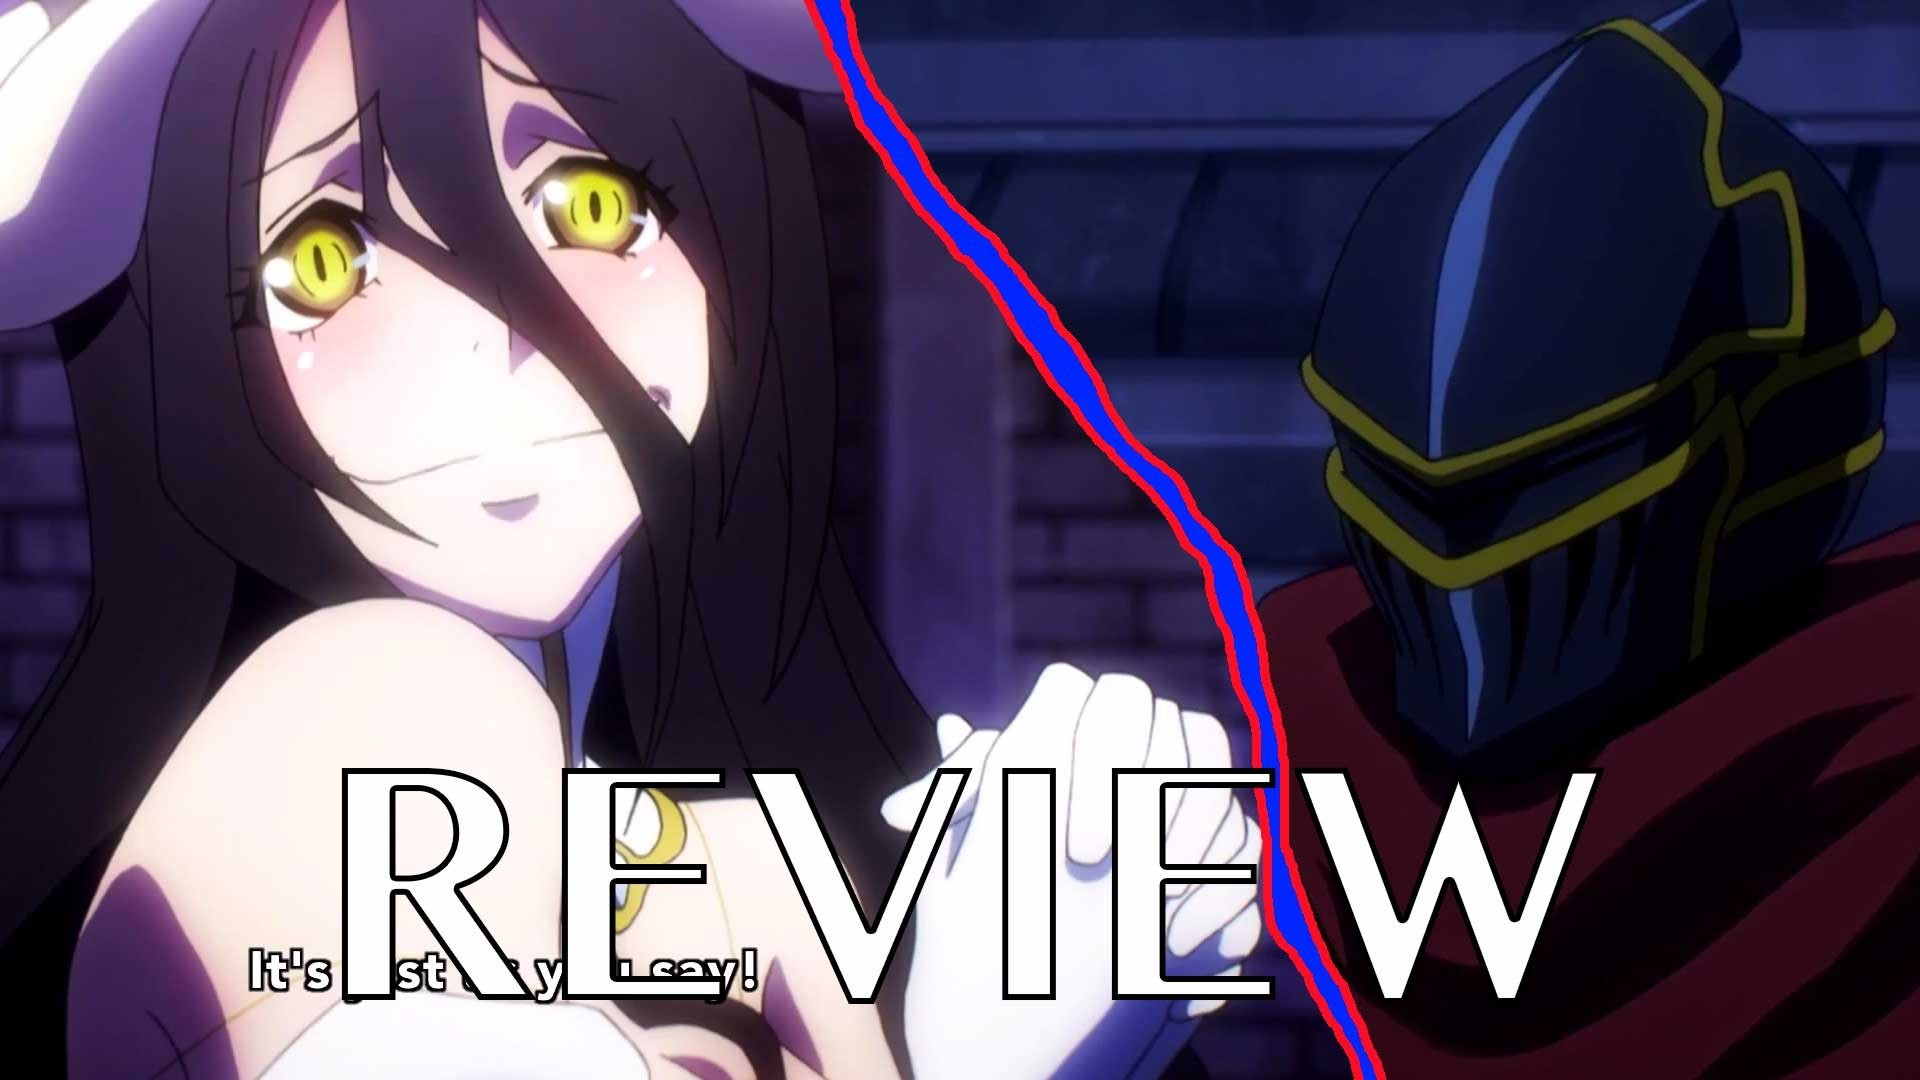 1920x1080 Overlord Episode 2 Anime Review - Albedo is Libido ( ͡͡ ° ͜ ʖ ͡ °) - YouTube